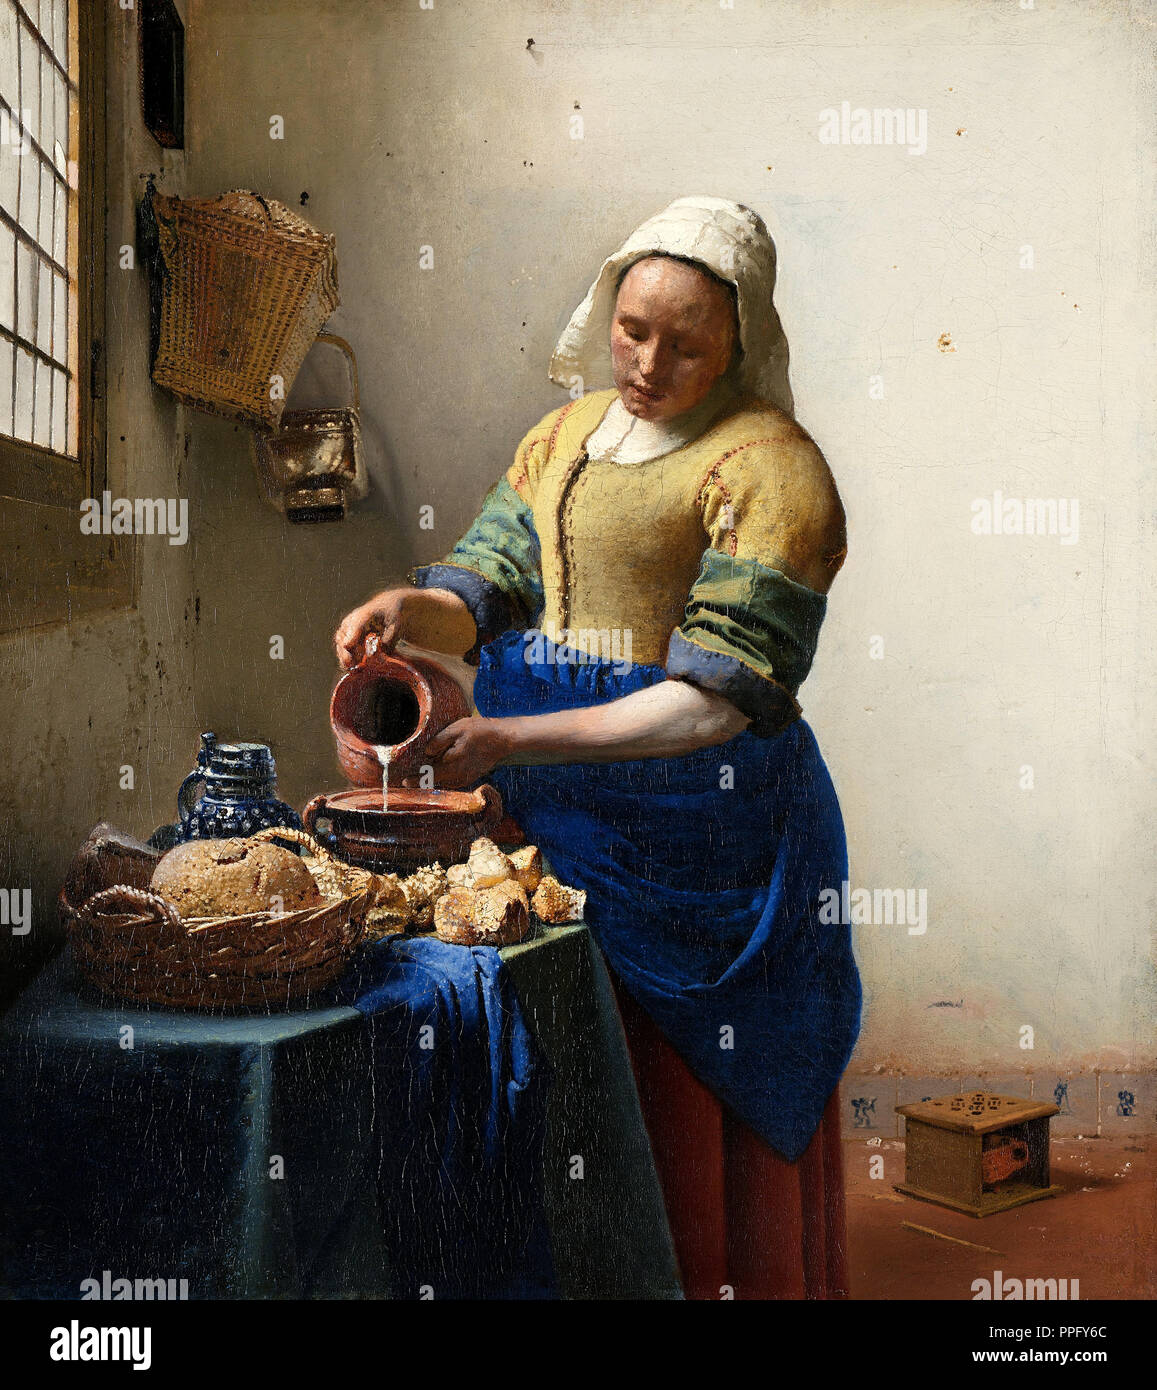 Johannes Vermeer - The Milkmaid. Circa 1660. Oil on canvas. Rijksmuseum Amsterdam, Netherlands. - Stock Image